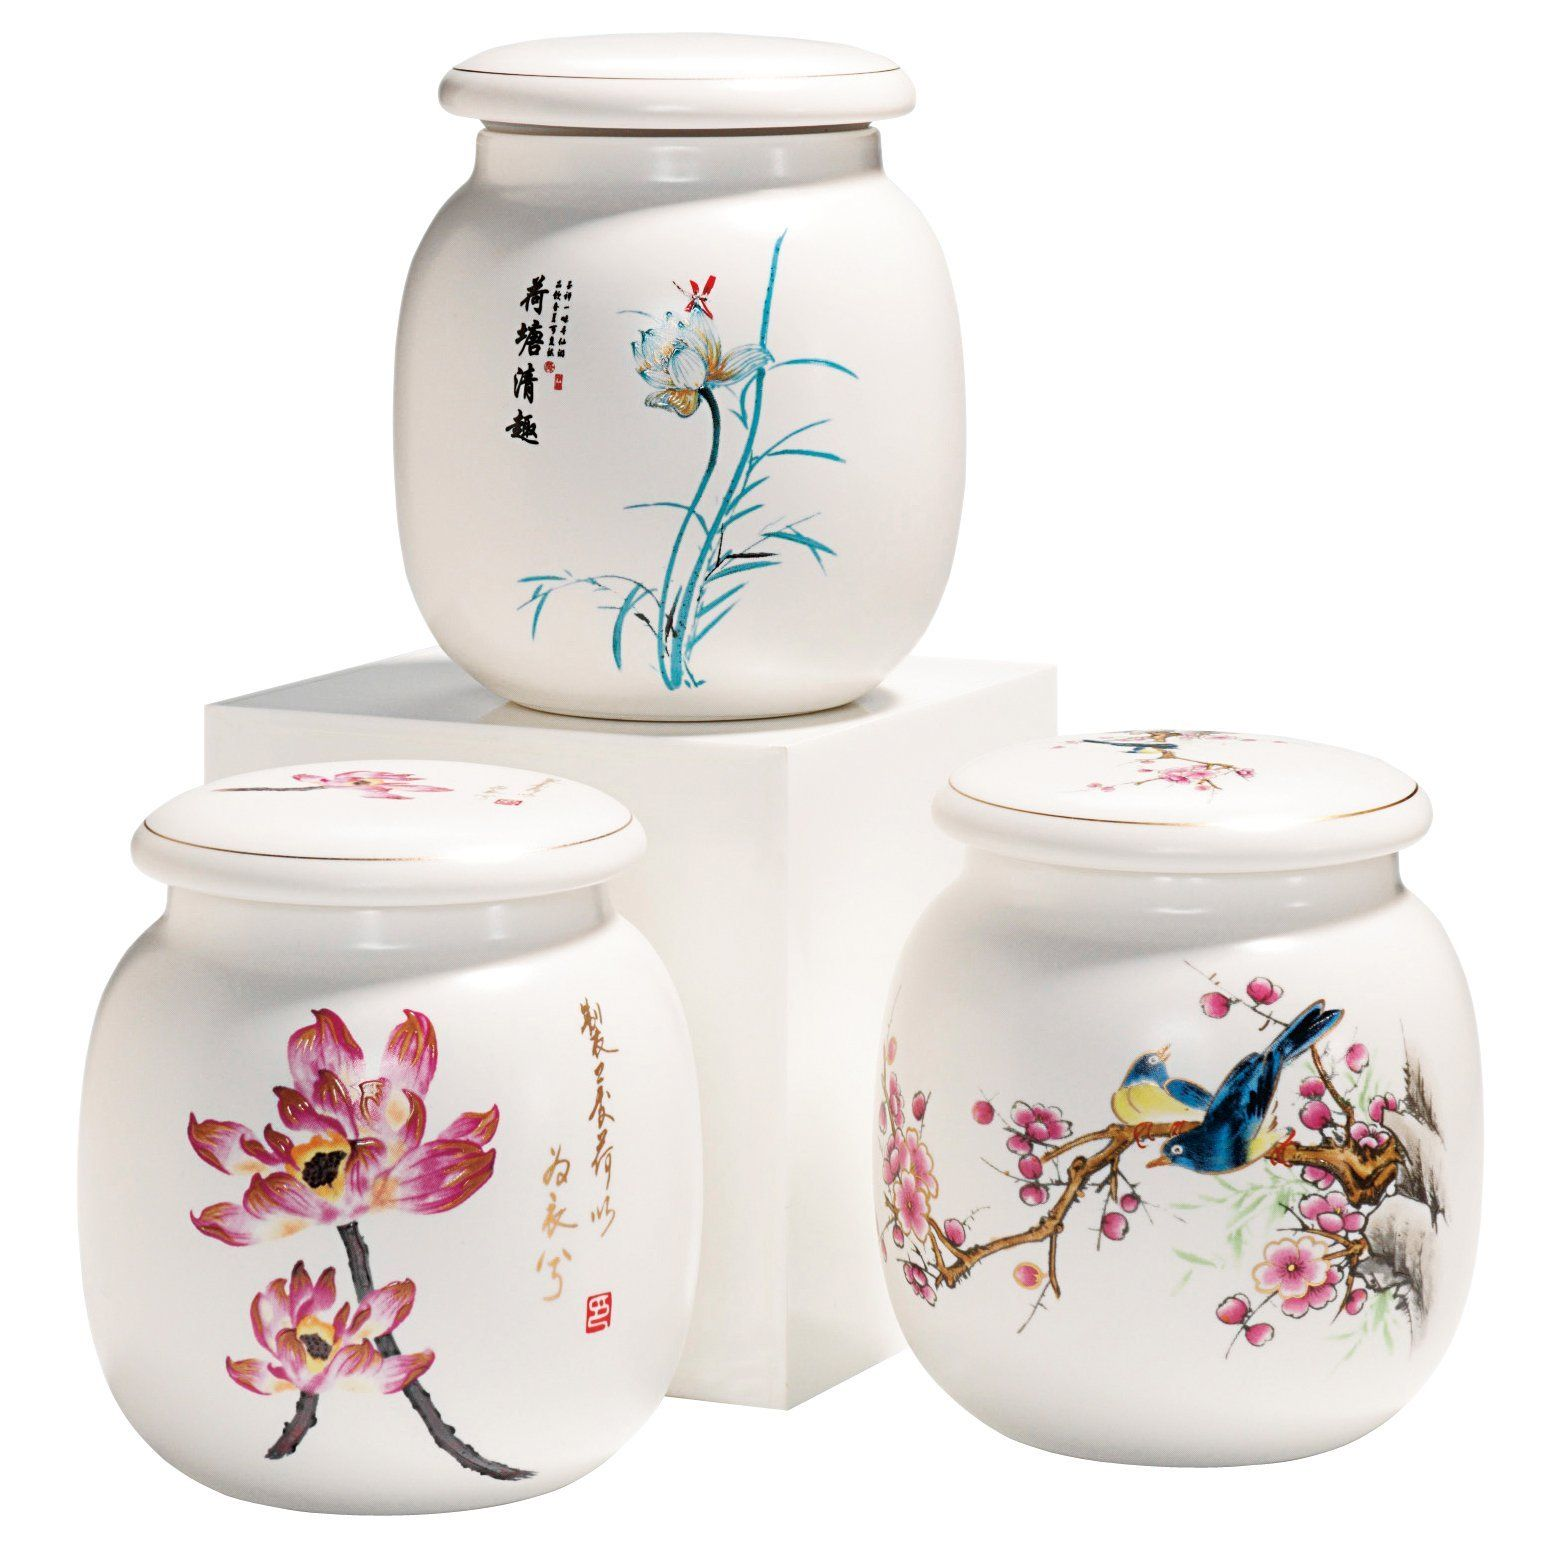 Delightful Painted Ceramic Storage Containers For Loose Tea